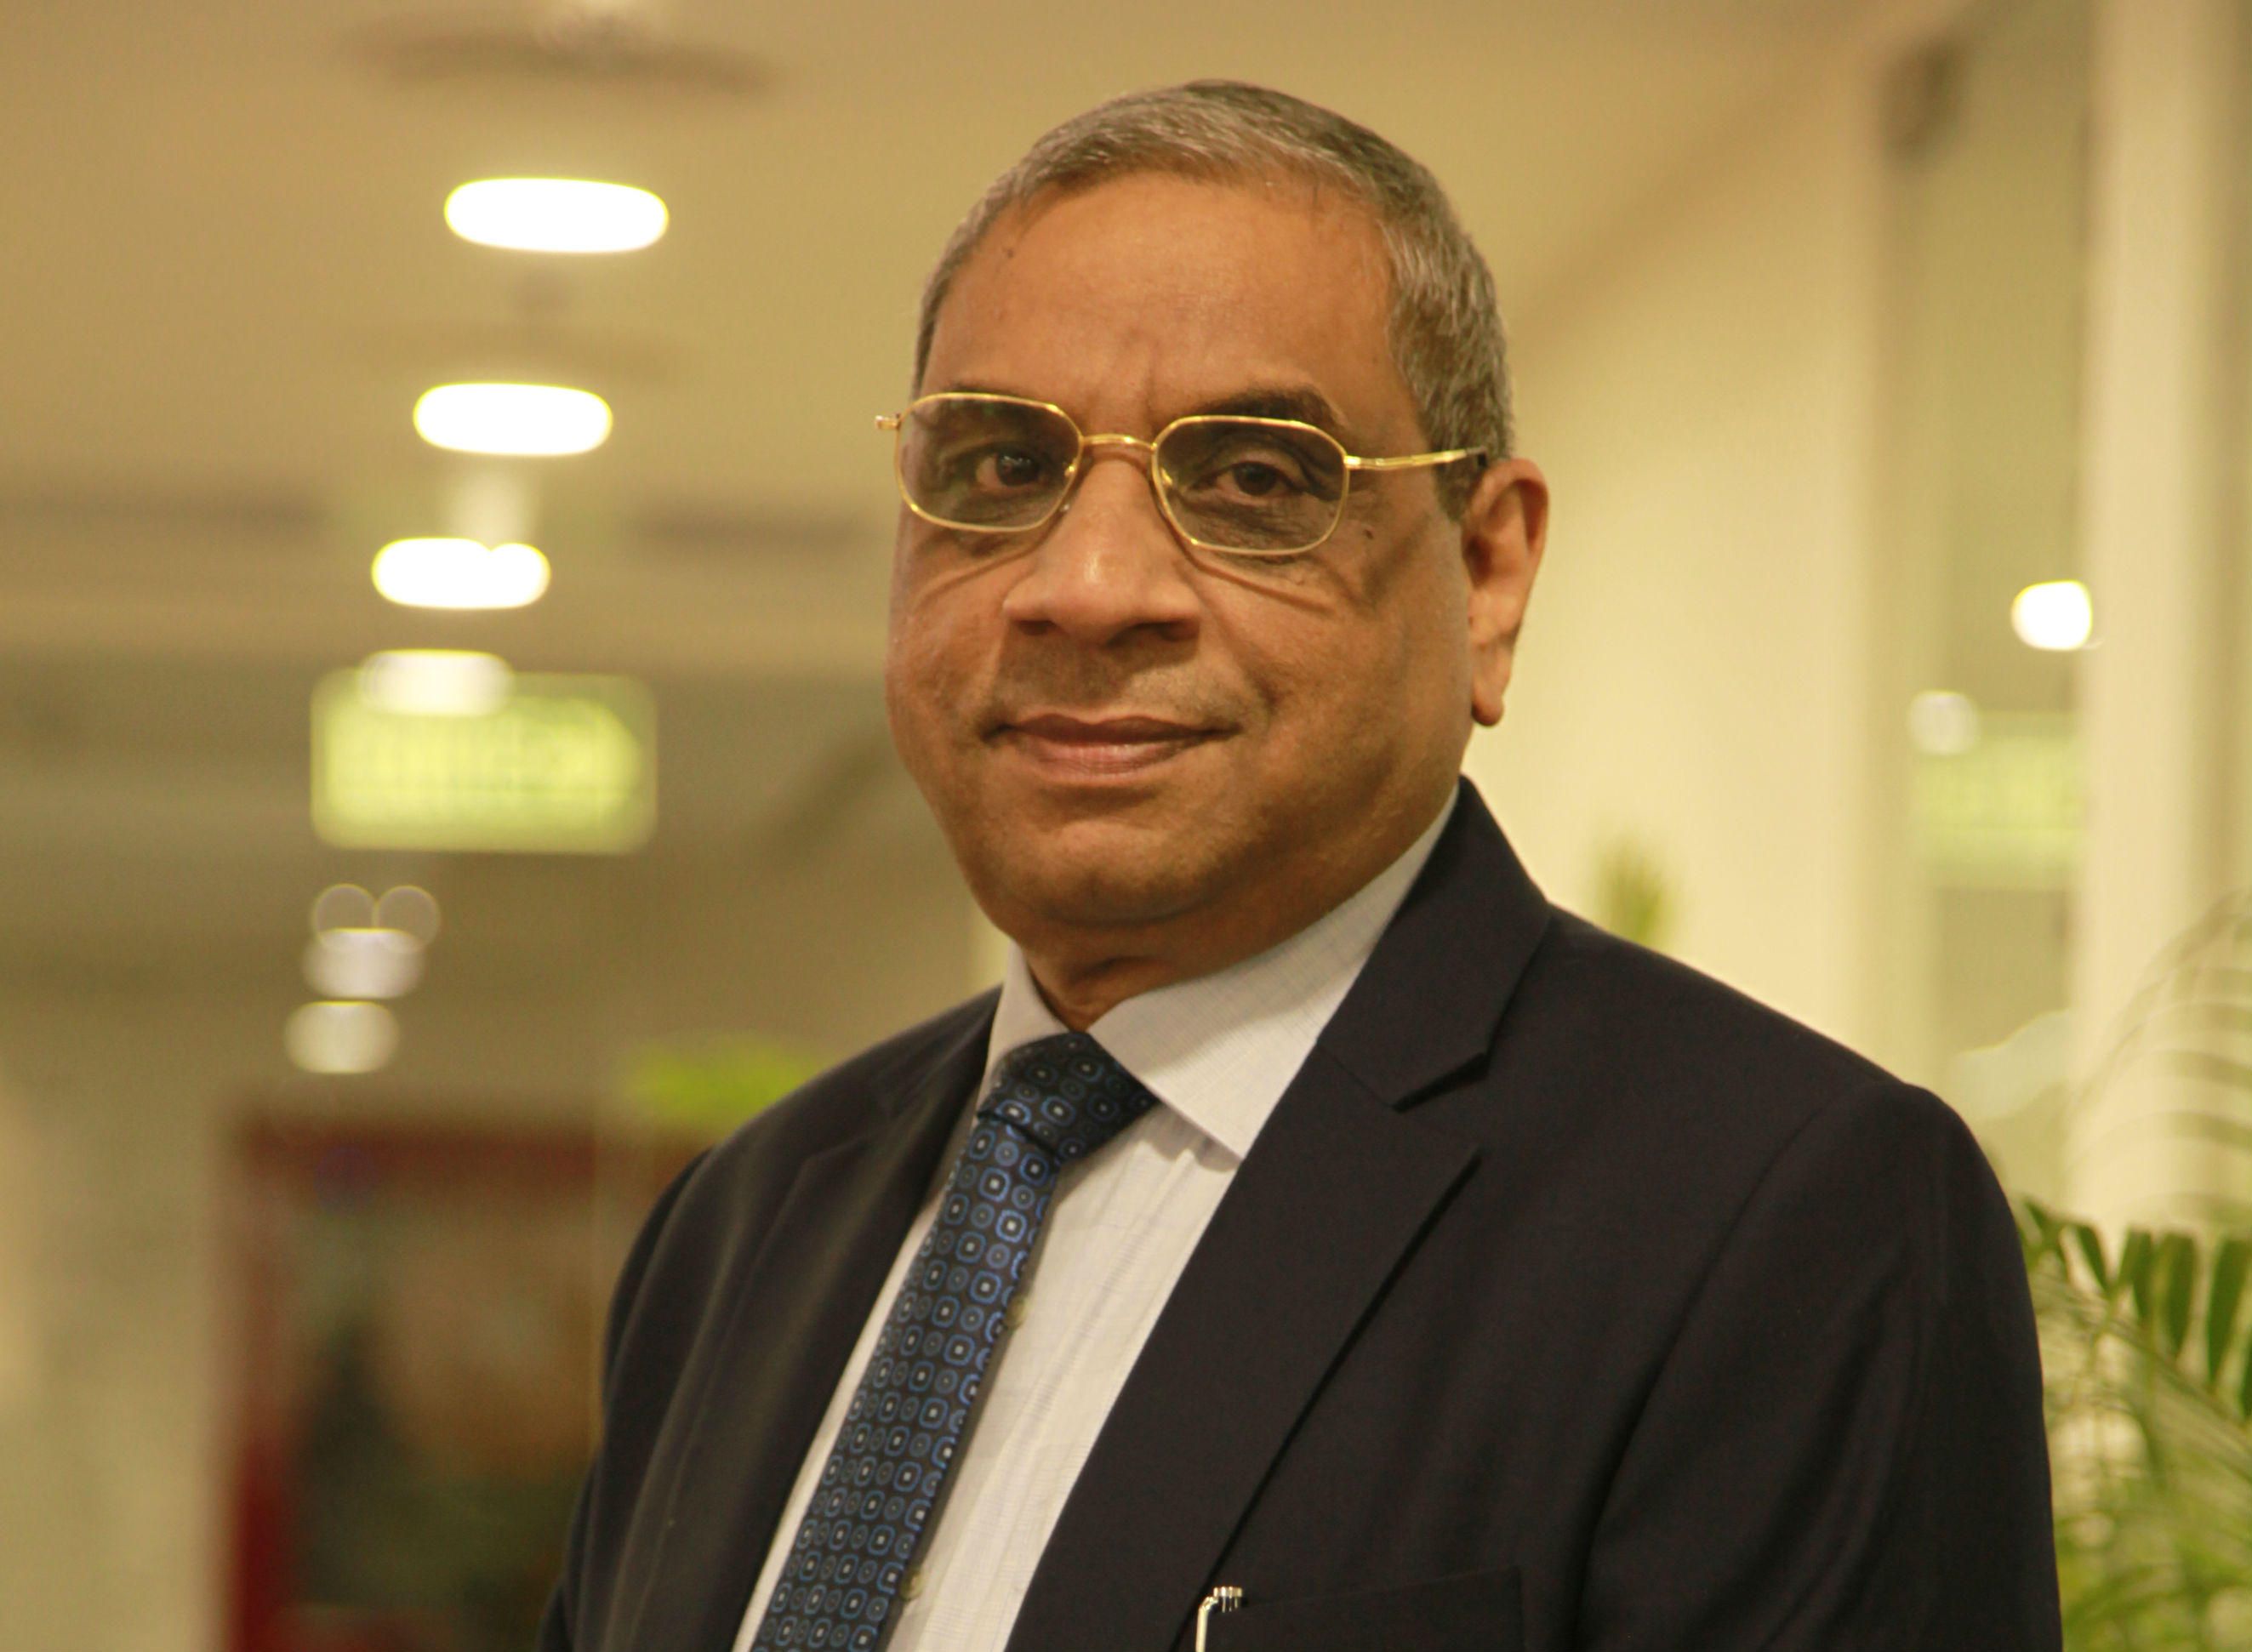 We have appointed Satish Kumar Gupta as the Managing Director & Chief Executive Officer